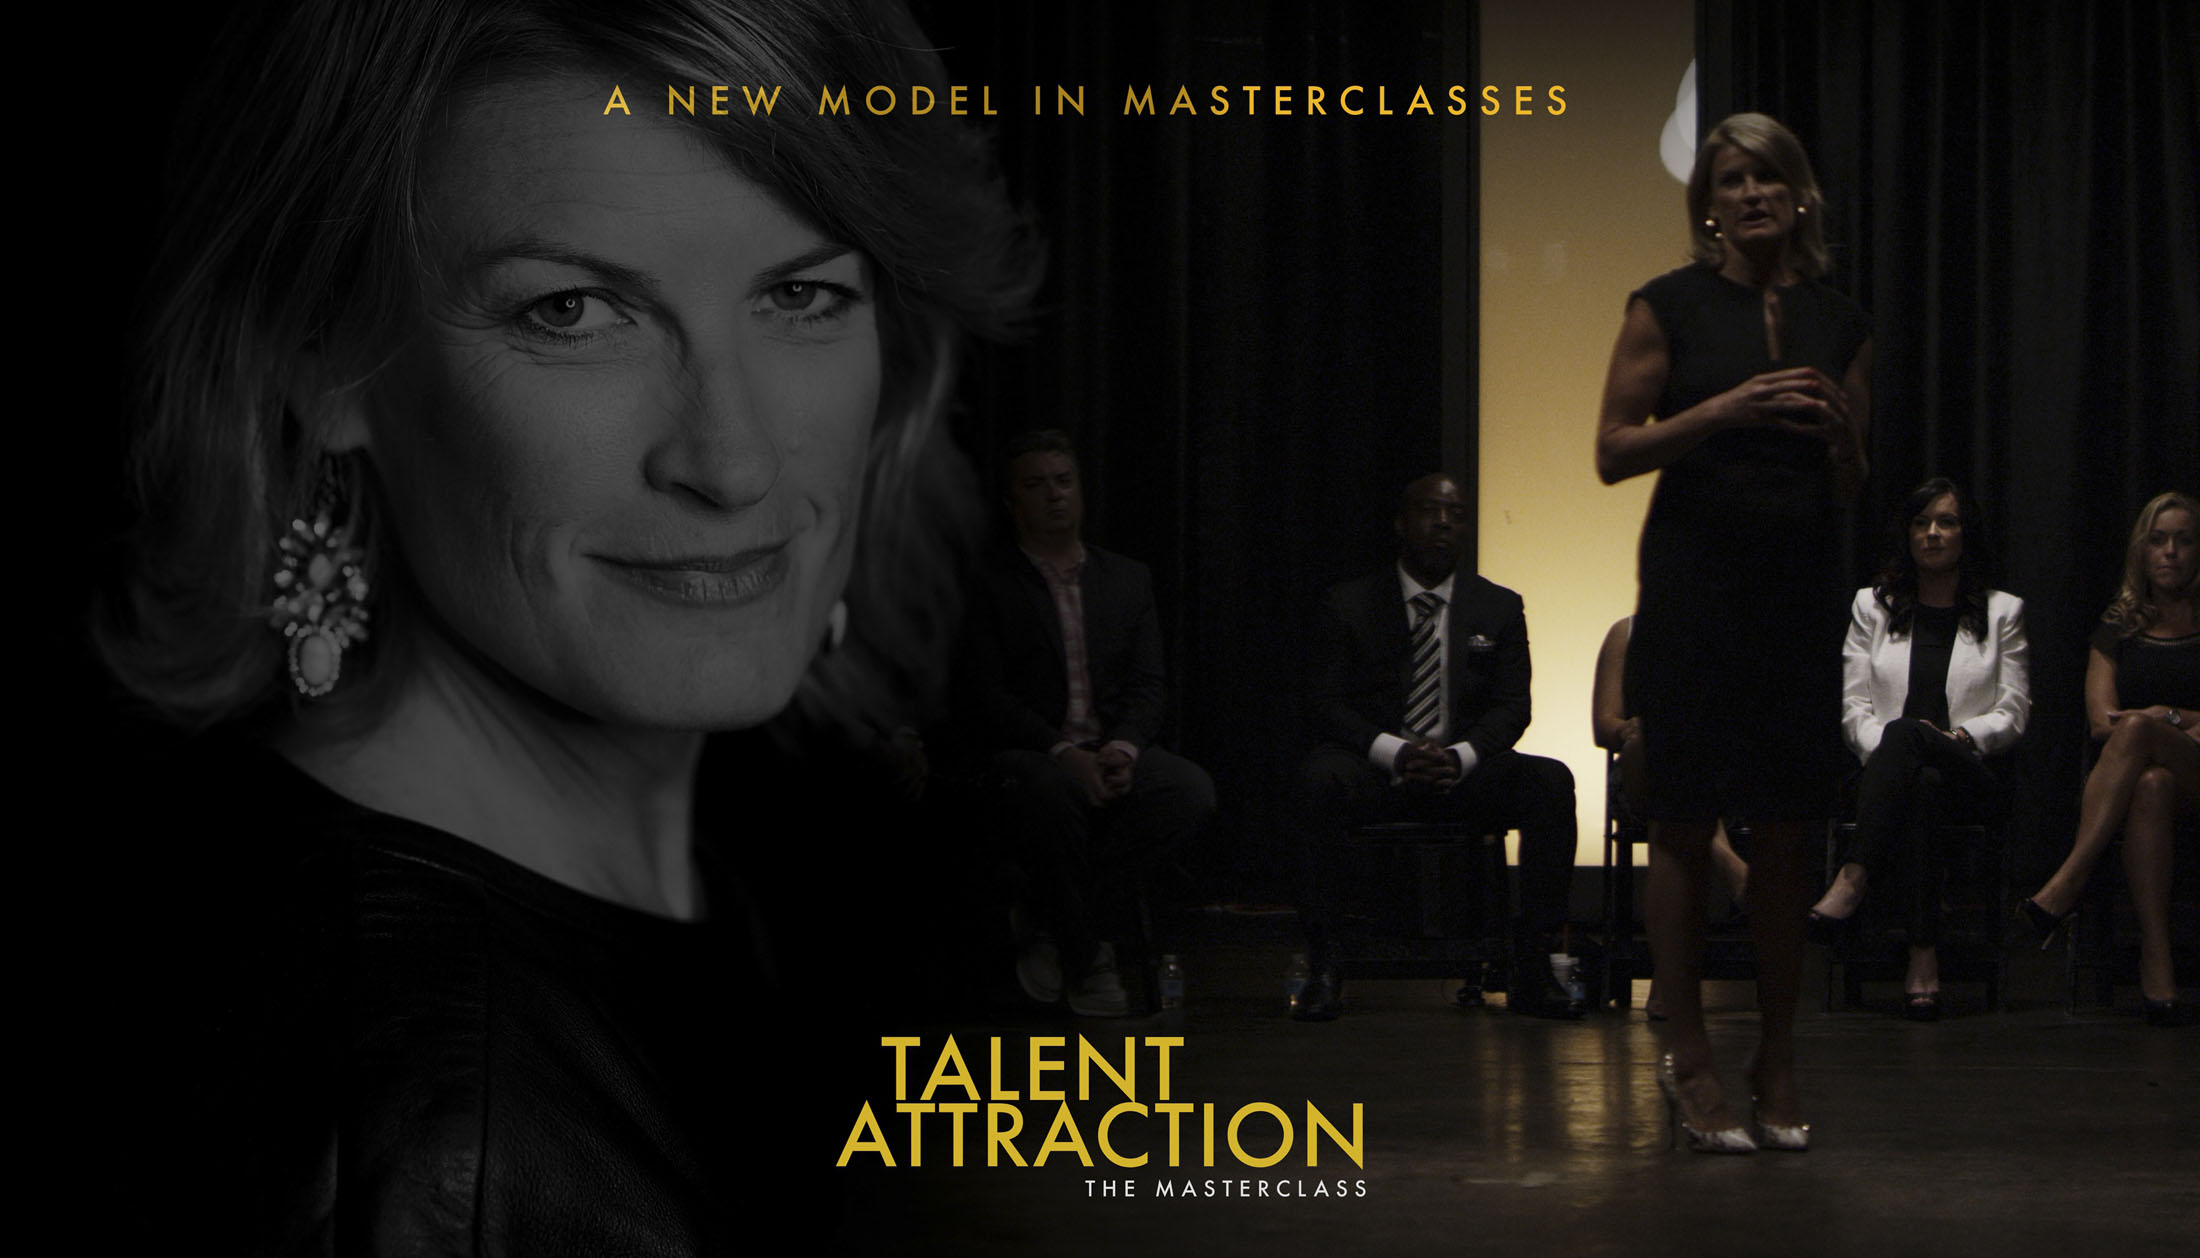 Talent Attraction, The Masterclass